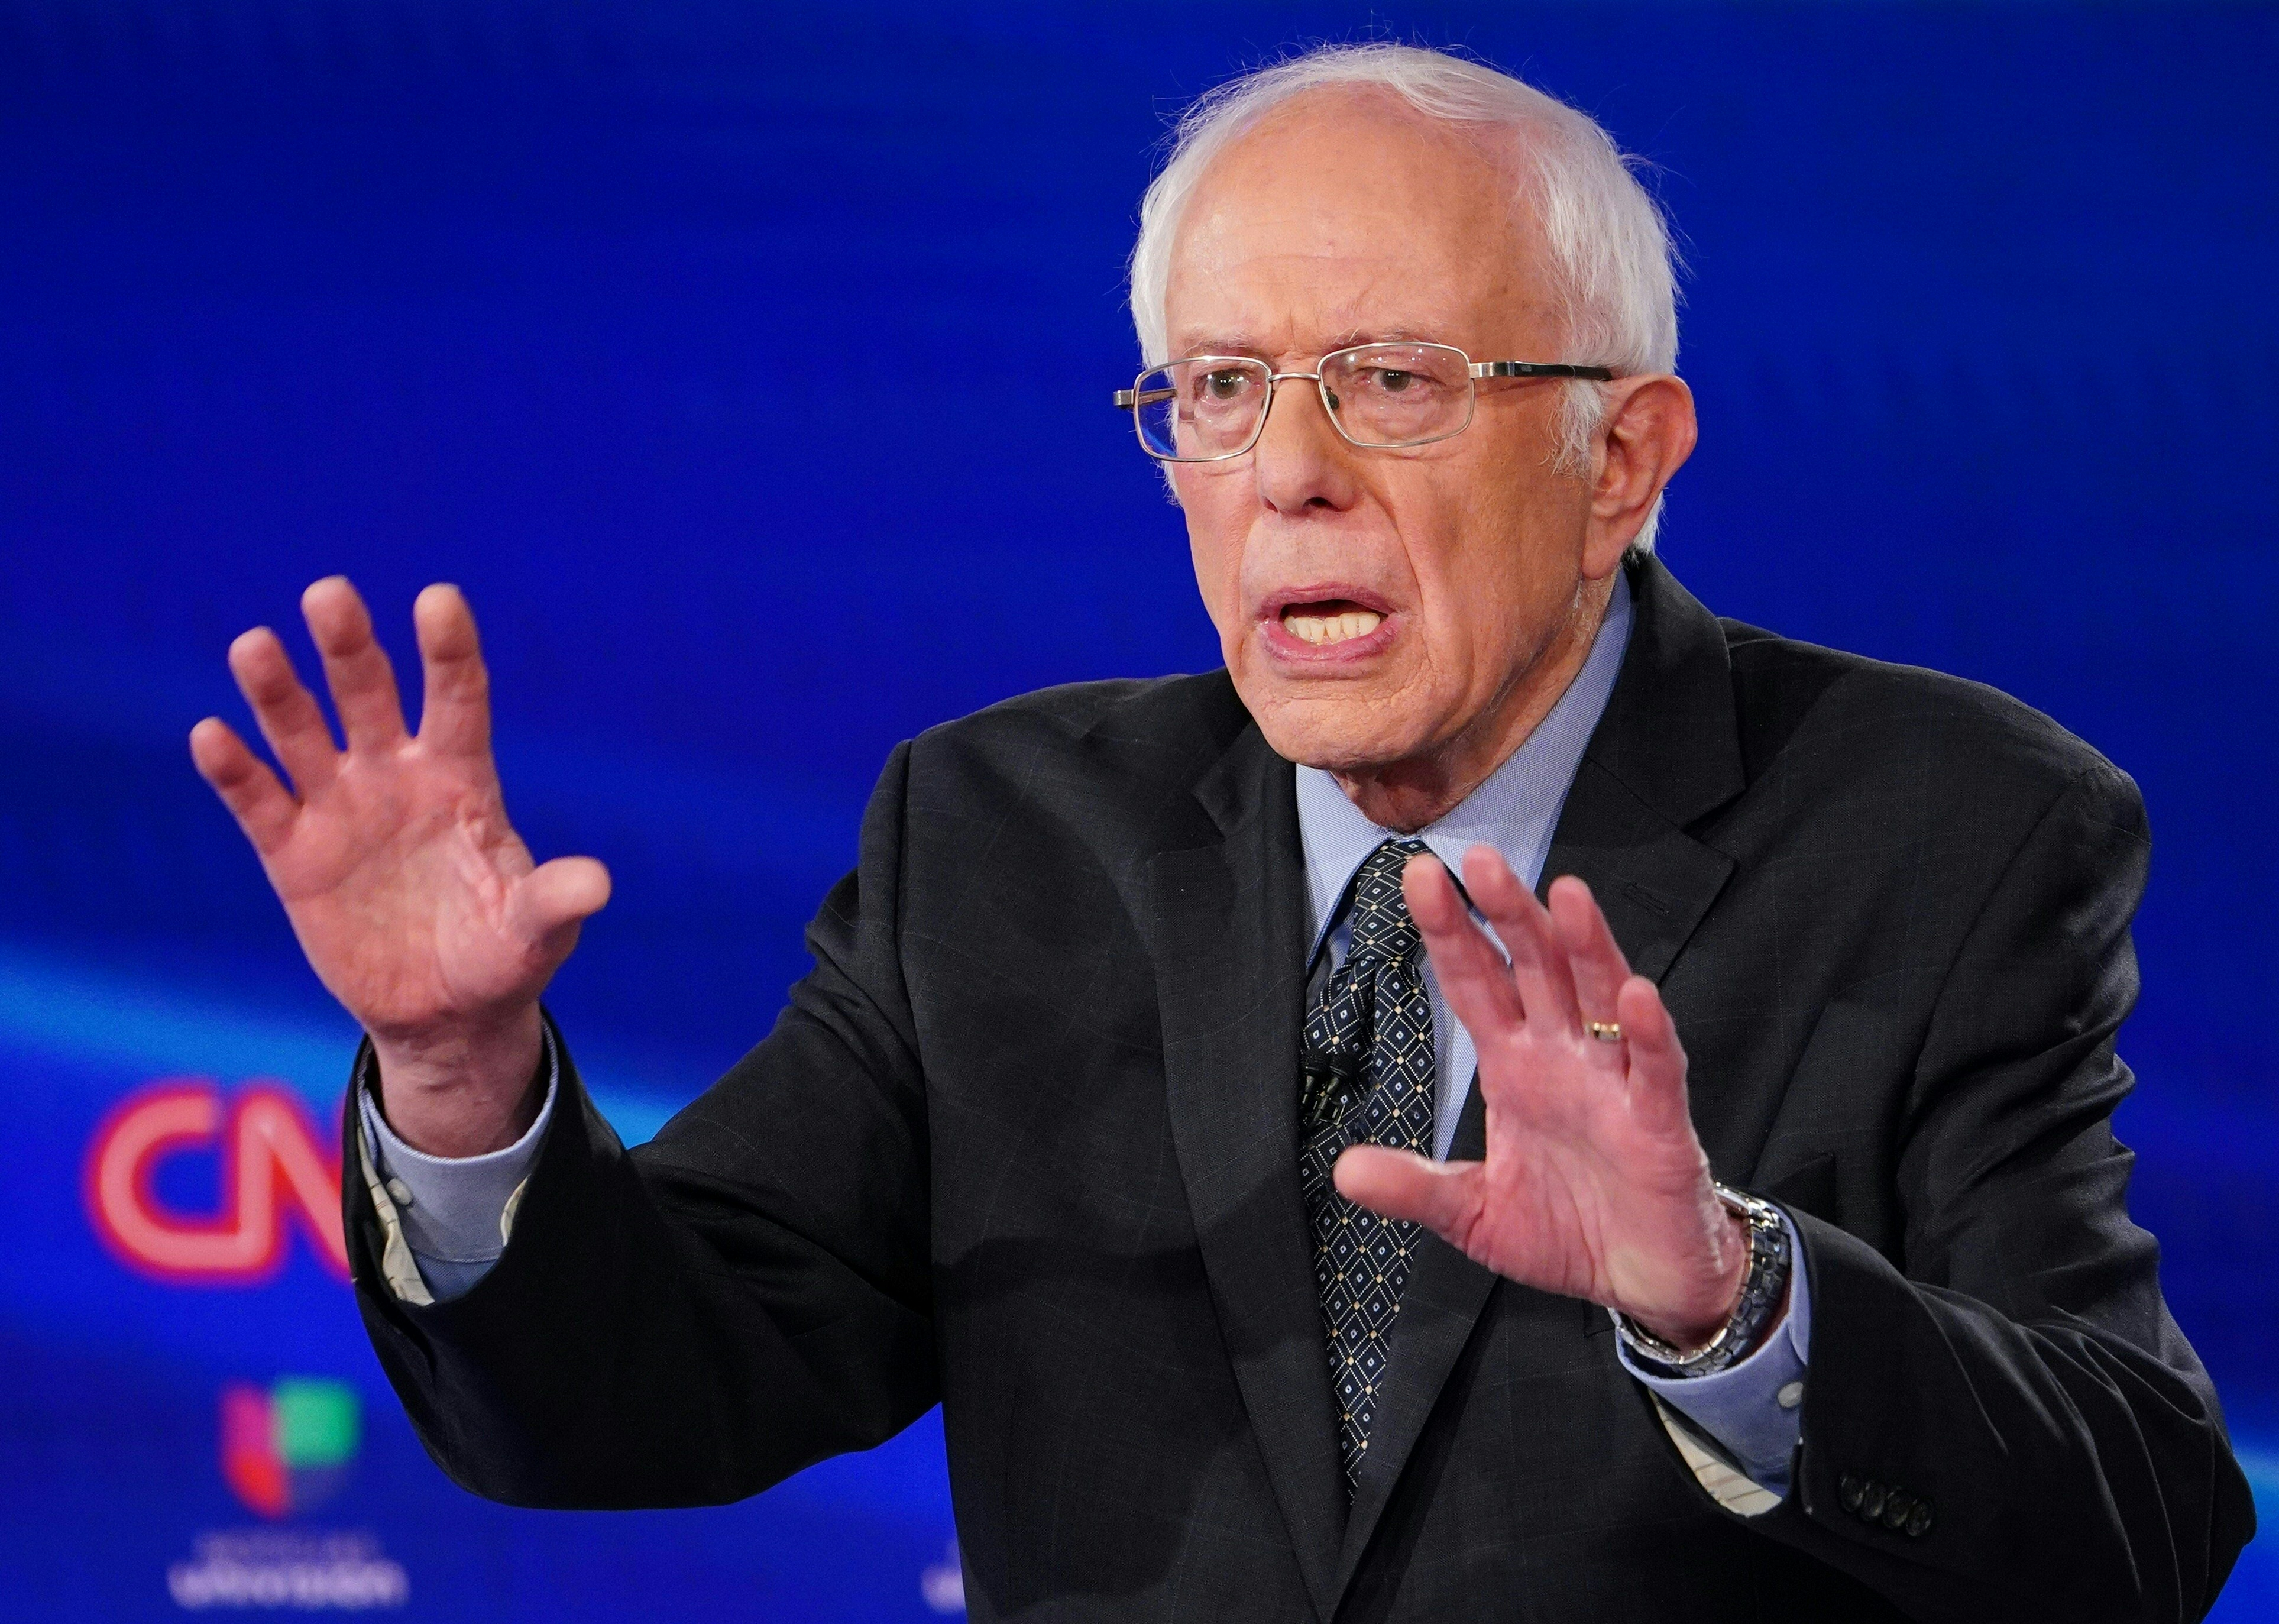 Democratic presidential hopeful Senator Bernie Sanders makes a point as he and former US vice president Joe Biden take part in the 11th Democratic Party 2020 presidential debate in a CNN Washington Bureau studio in Washington, DC on March 15, 2020. (Photo by MANDEL NGAN/AFP via Getty Images)